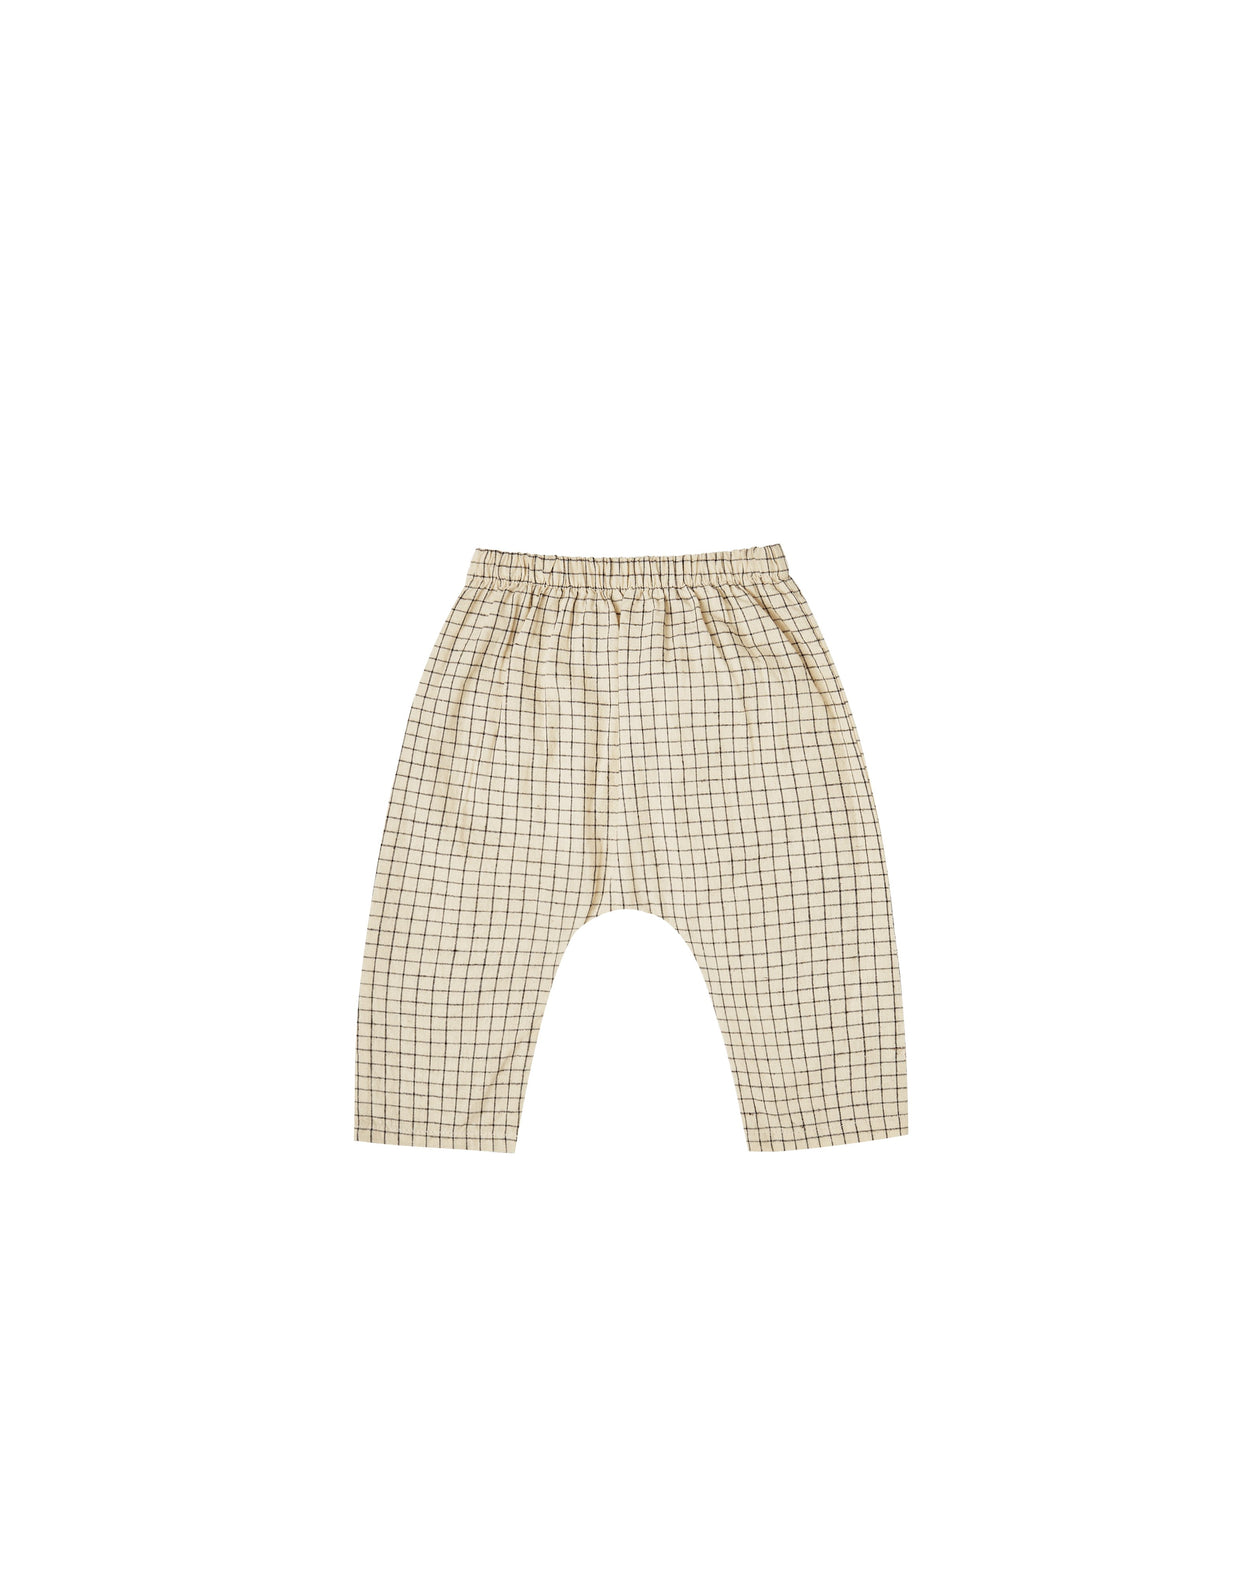 The Rylee & Cru Grid Orion Harem Pant Butter